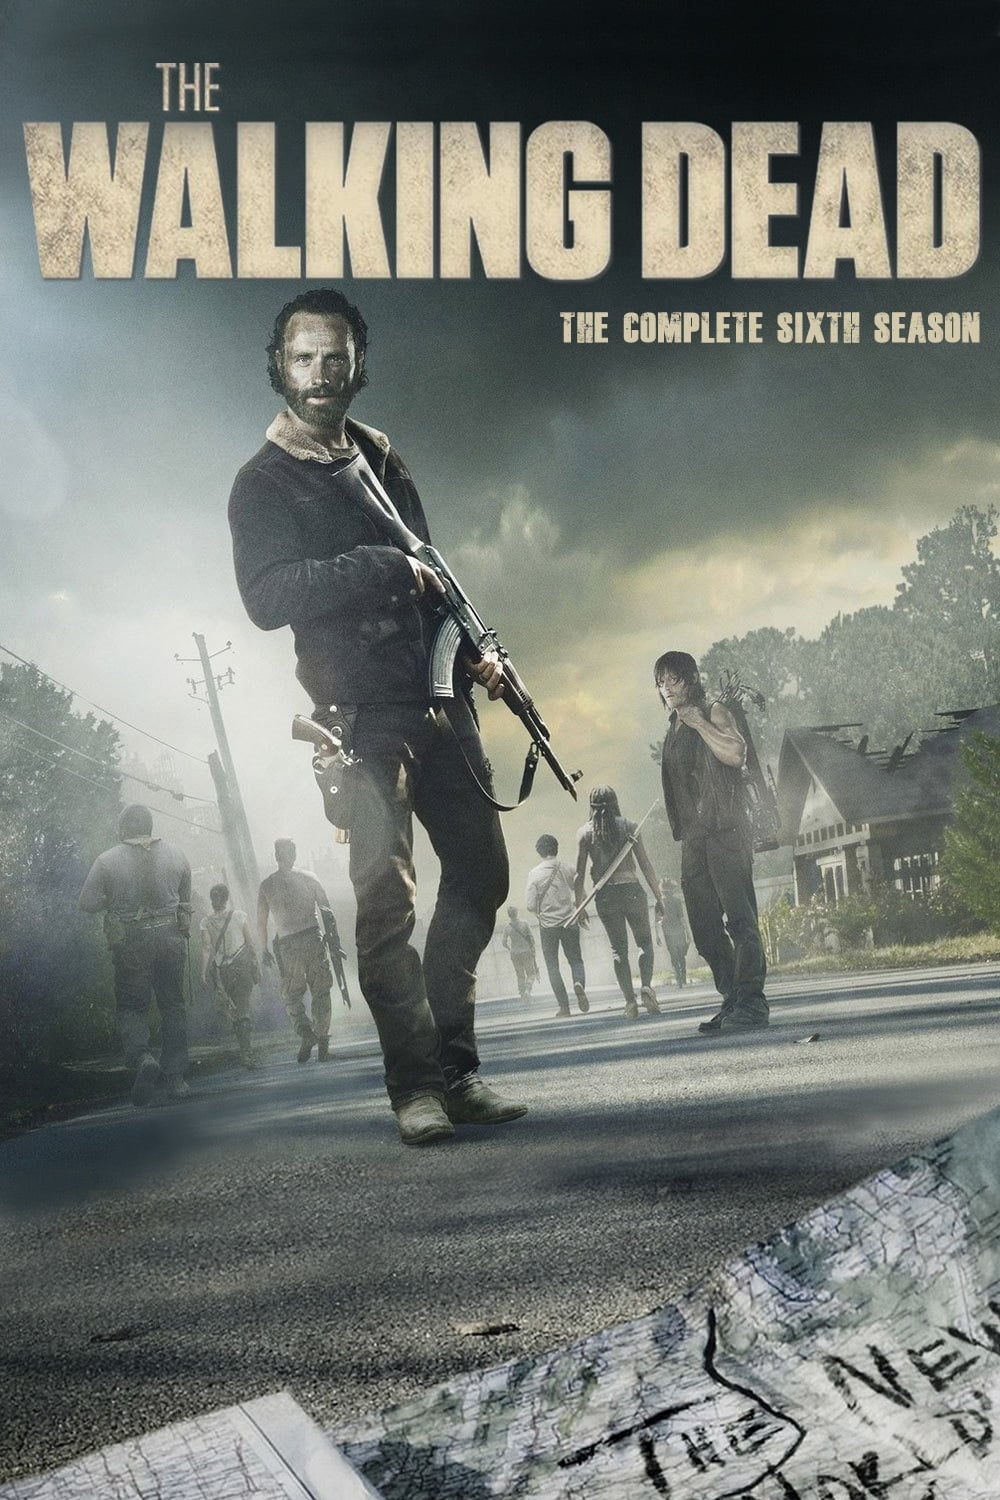 Assistir The Walking Dead - 6x08 - Dublado - Começo do Fim Online Dublado 1080p